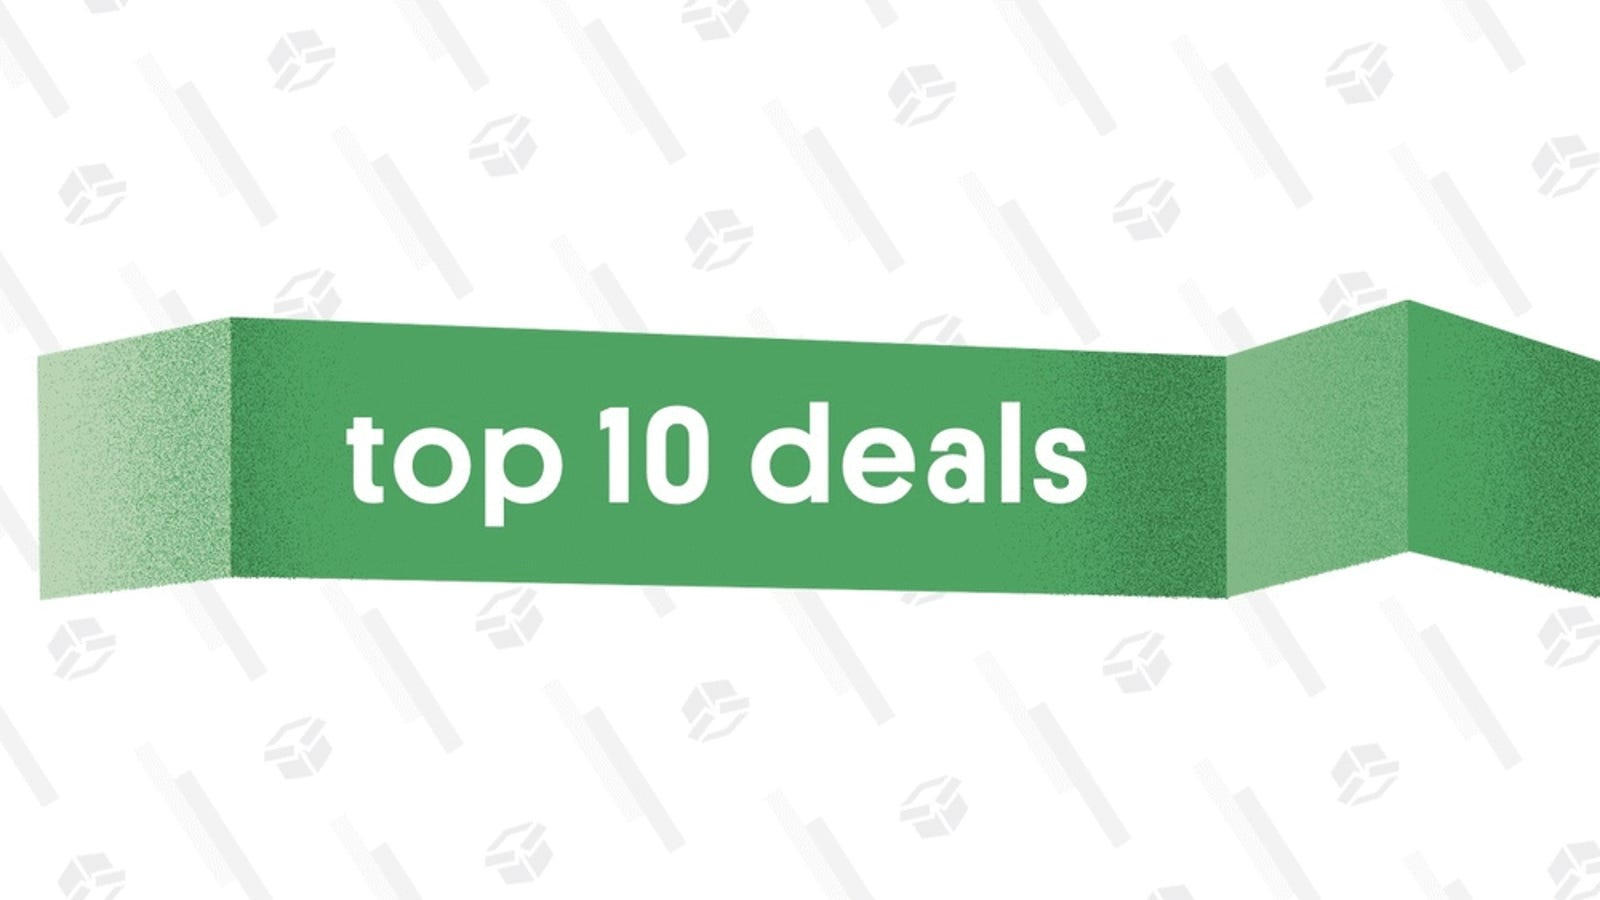 The 10 Best Deals of September 13, 2018